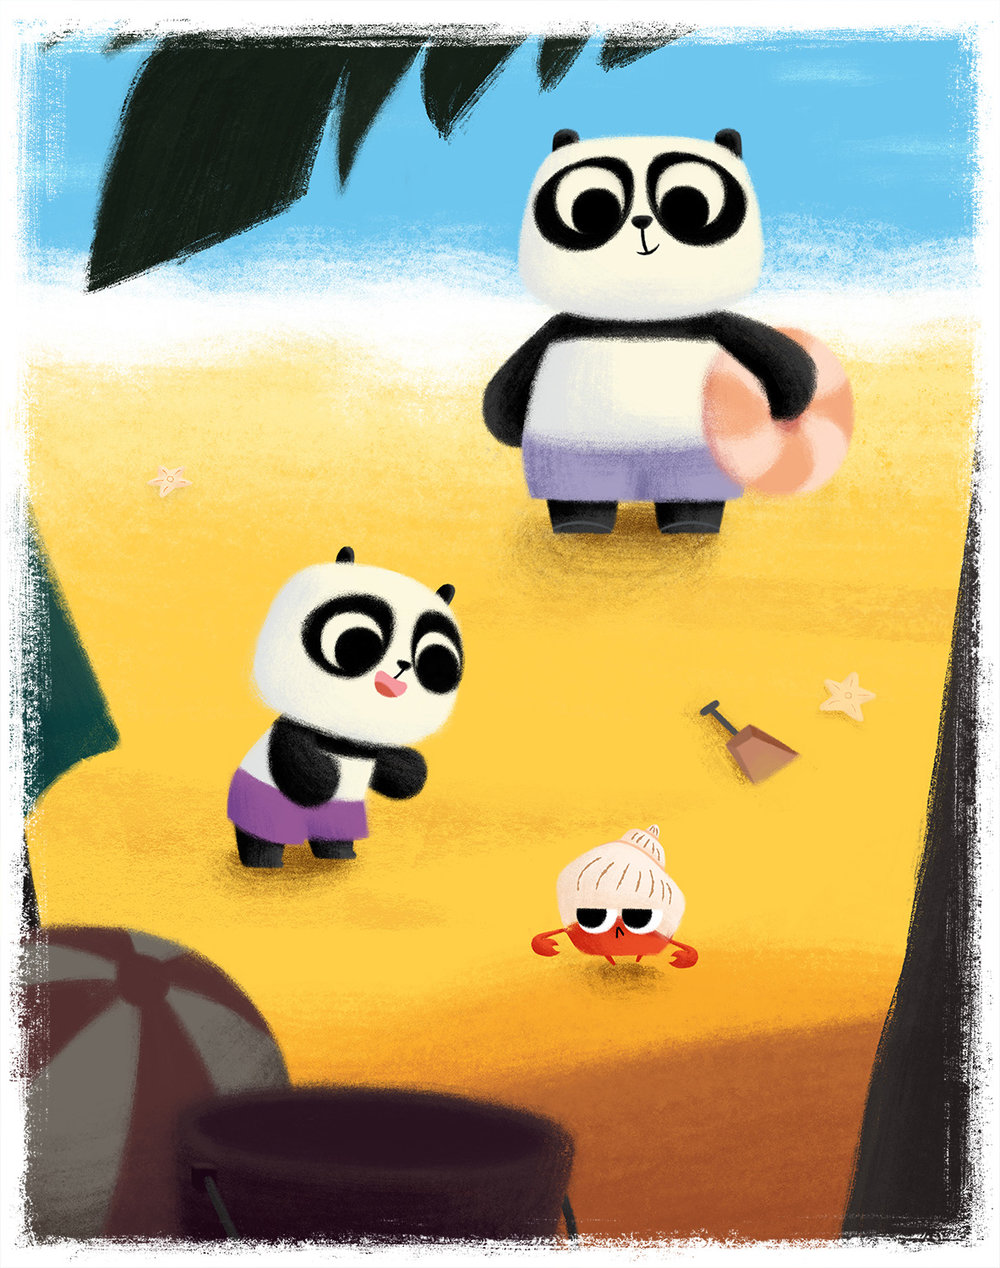 Pandas_on_the_Beach_Cover.jpg